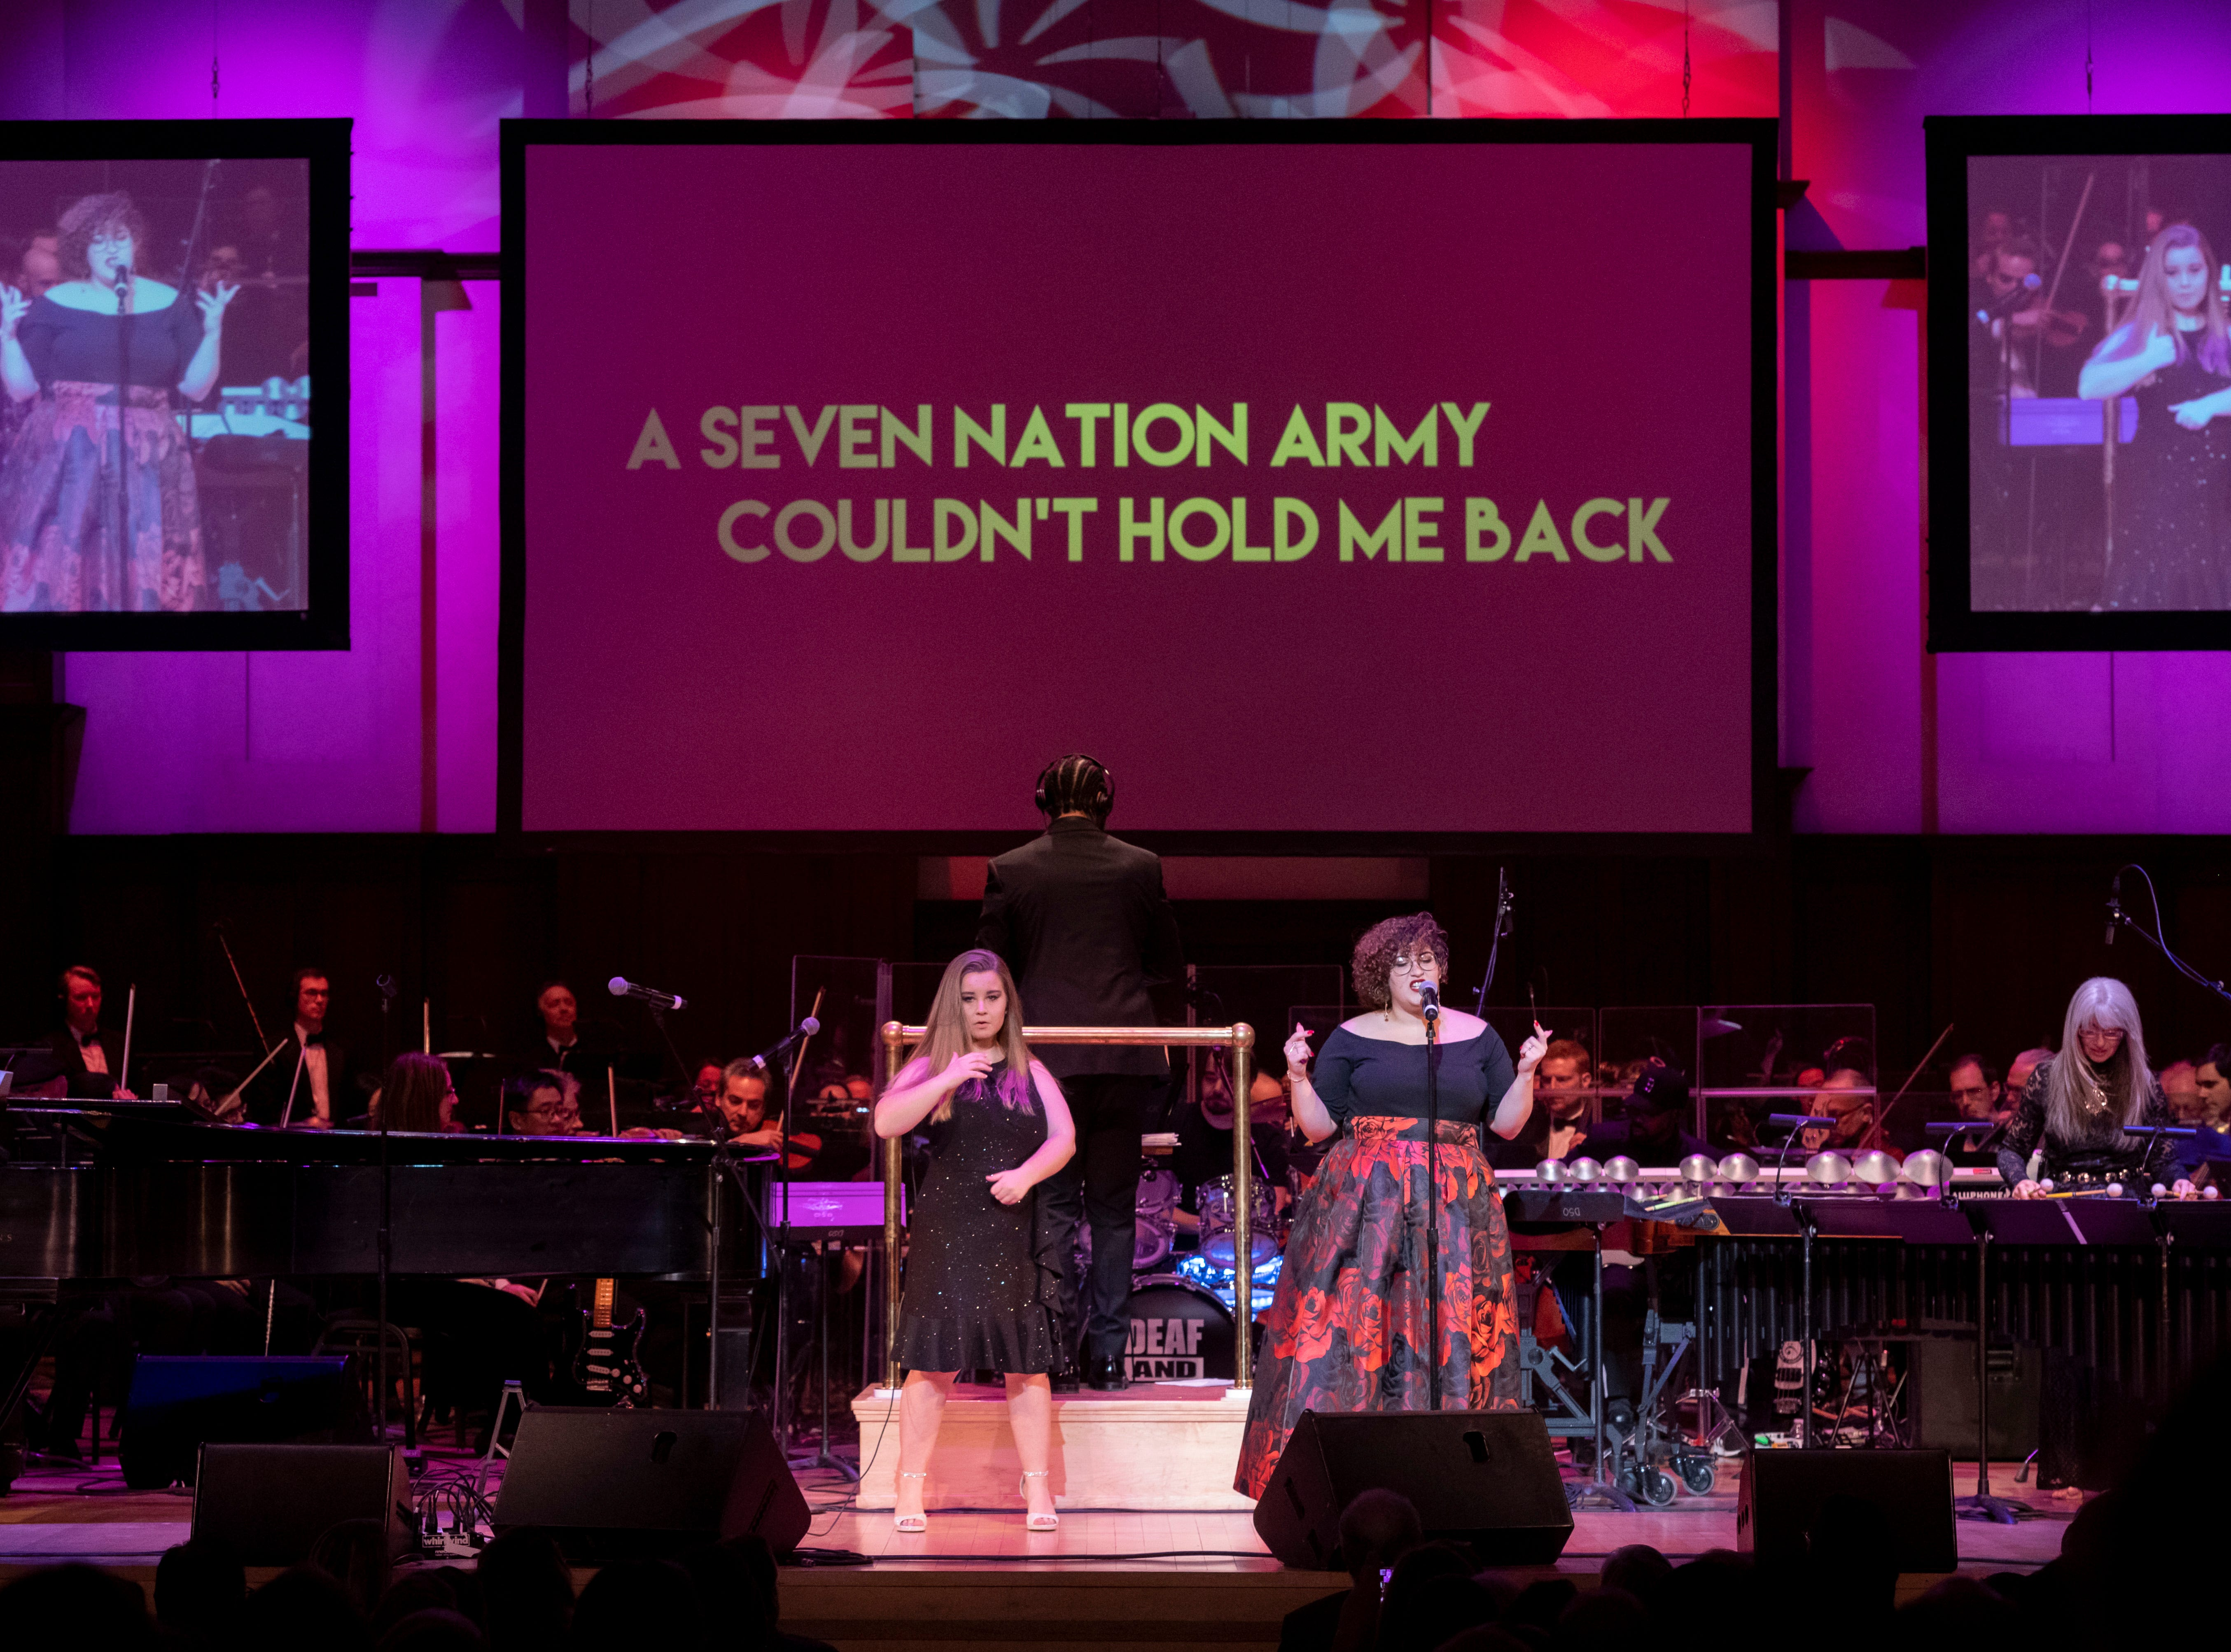 """ASL performer Morgan Nimmo, left, and singer Mama Yaya perform """"Seven Nation Army"""" by the White Stripes during the Deaf and Loud Symphonic Experience at the Detroit Symphony Orchestra, December 16, 2018. Deaf artists and the DSO performed a combination of current and orchestral music in American Sign Language and accompanied by large screen videos with lyrics presented for each song."""